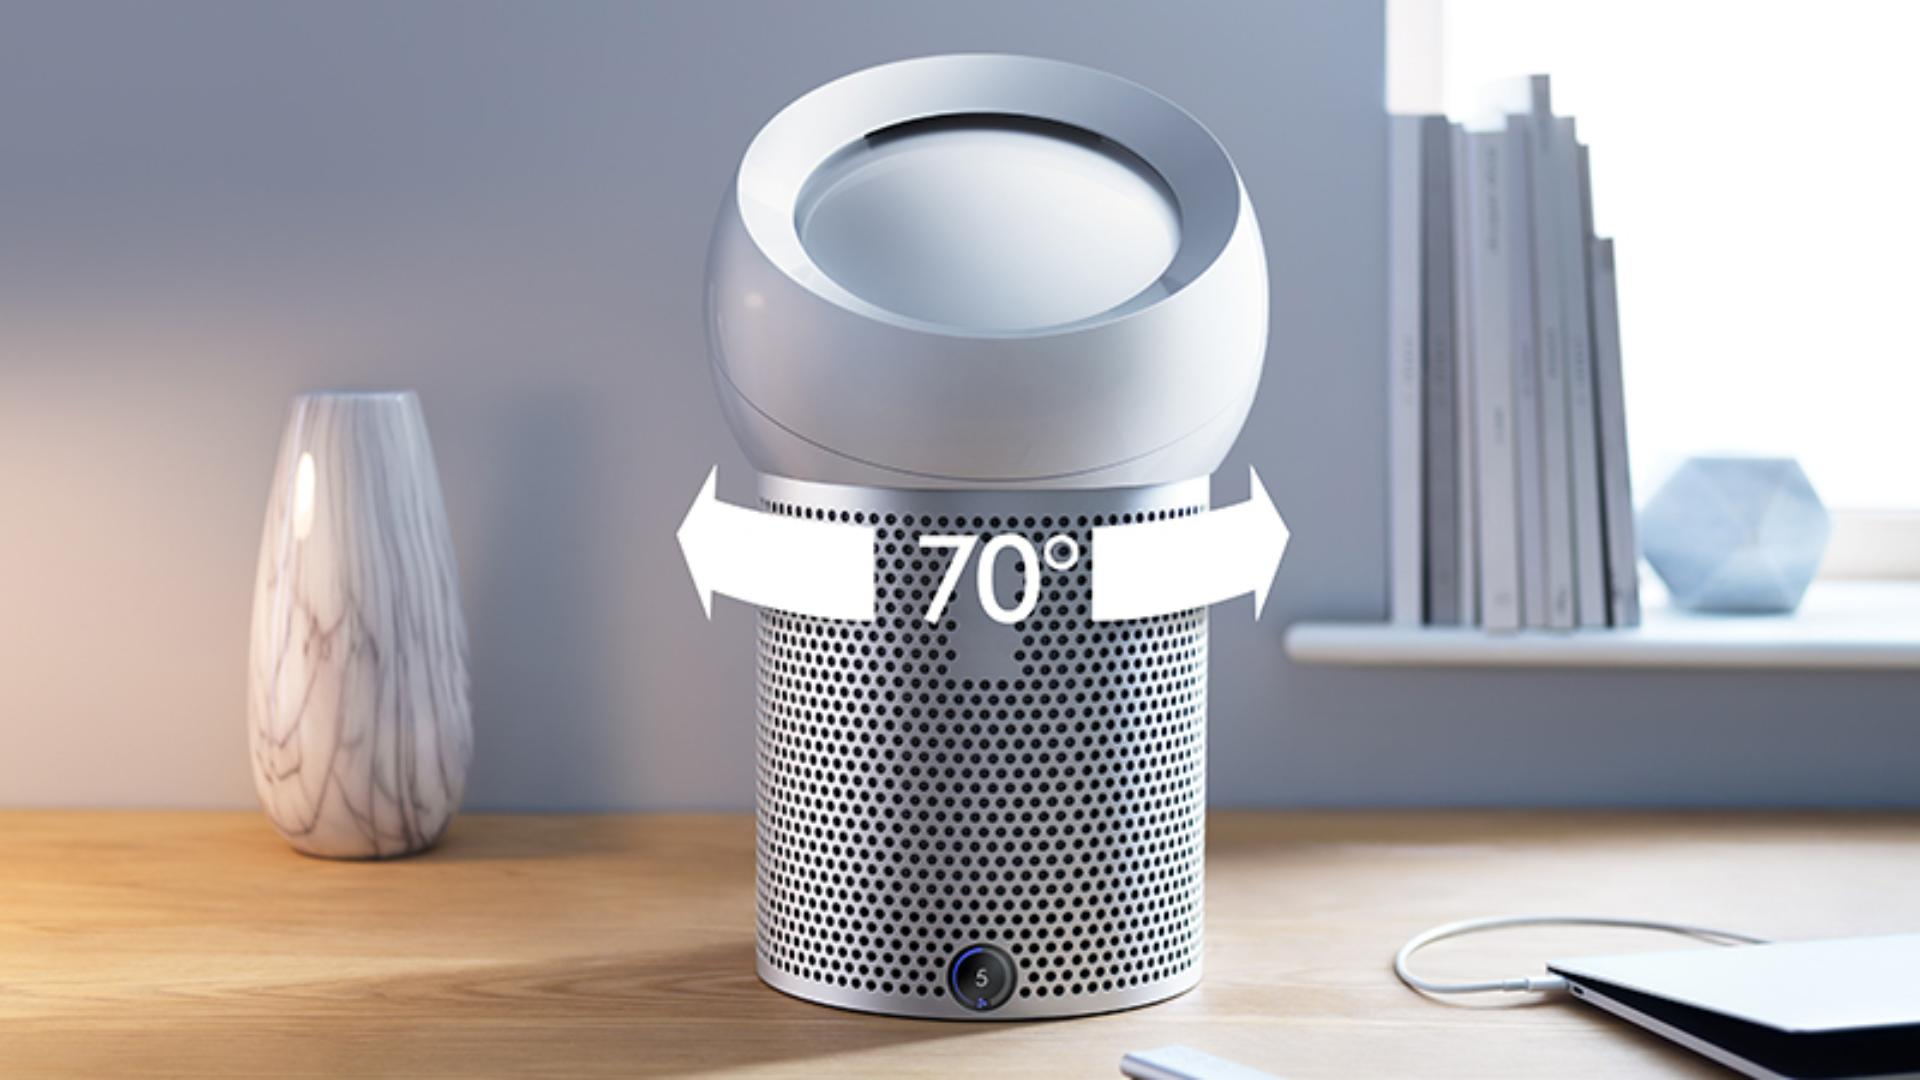 70˚ oscillation with Dyson Pure Cool Me™ personal purifying fan